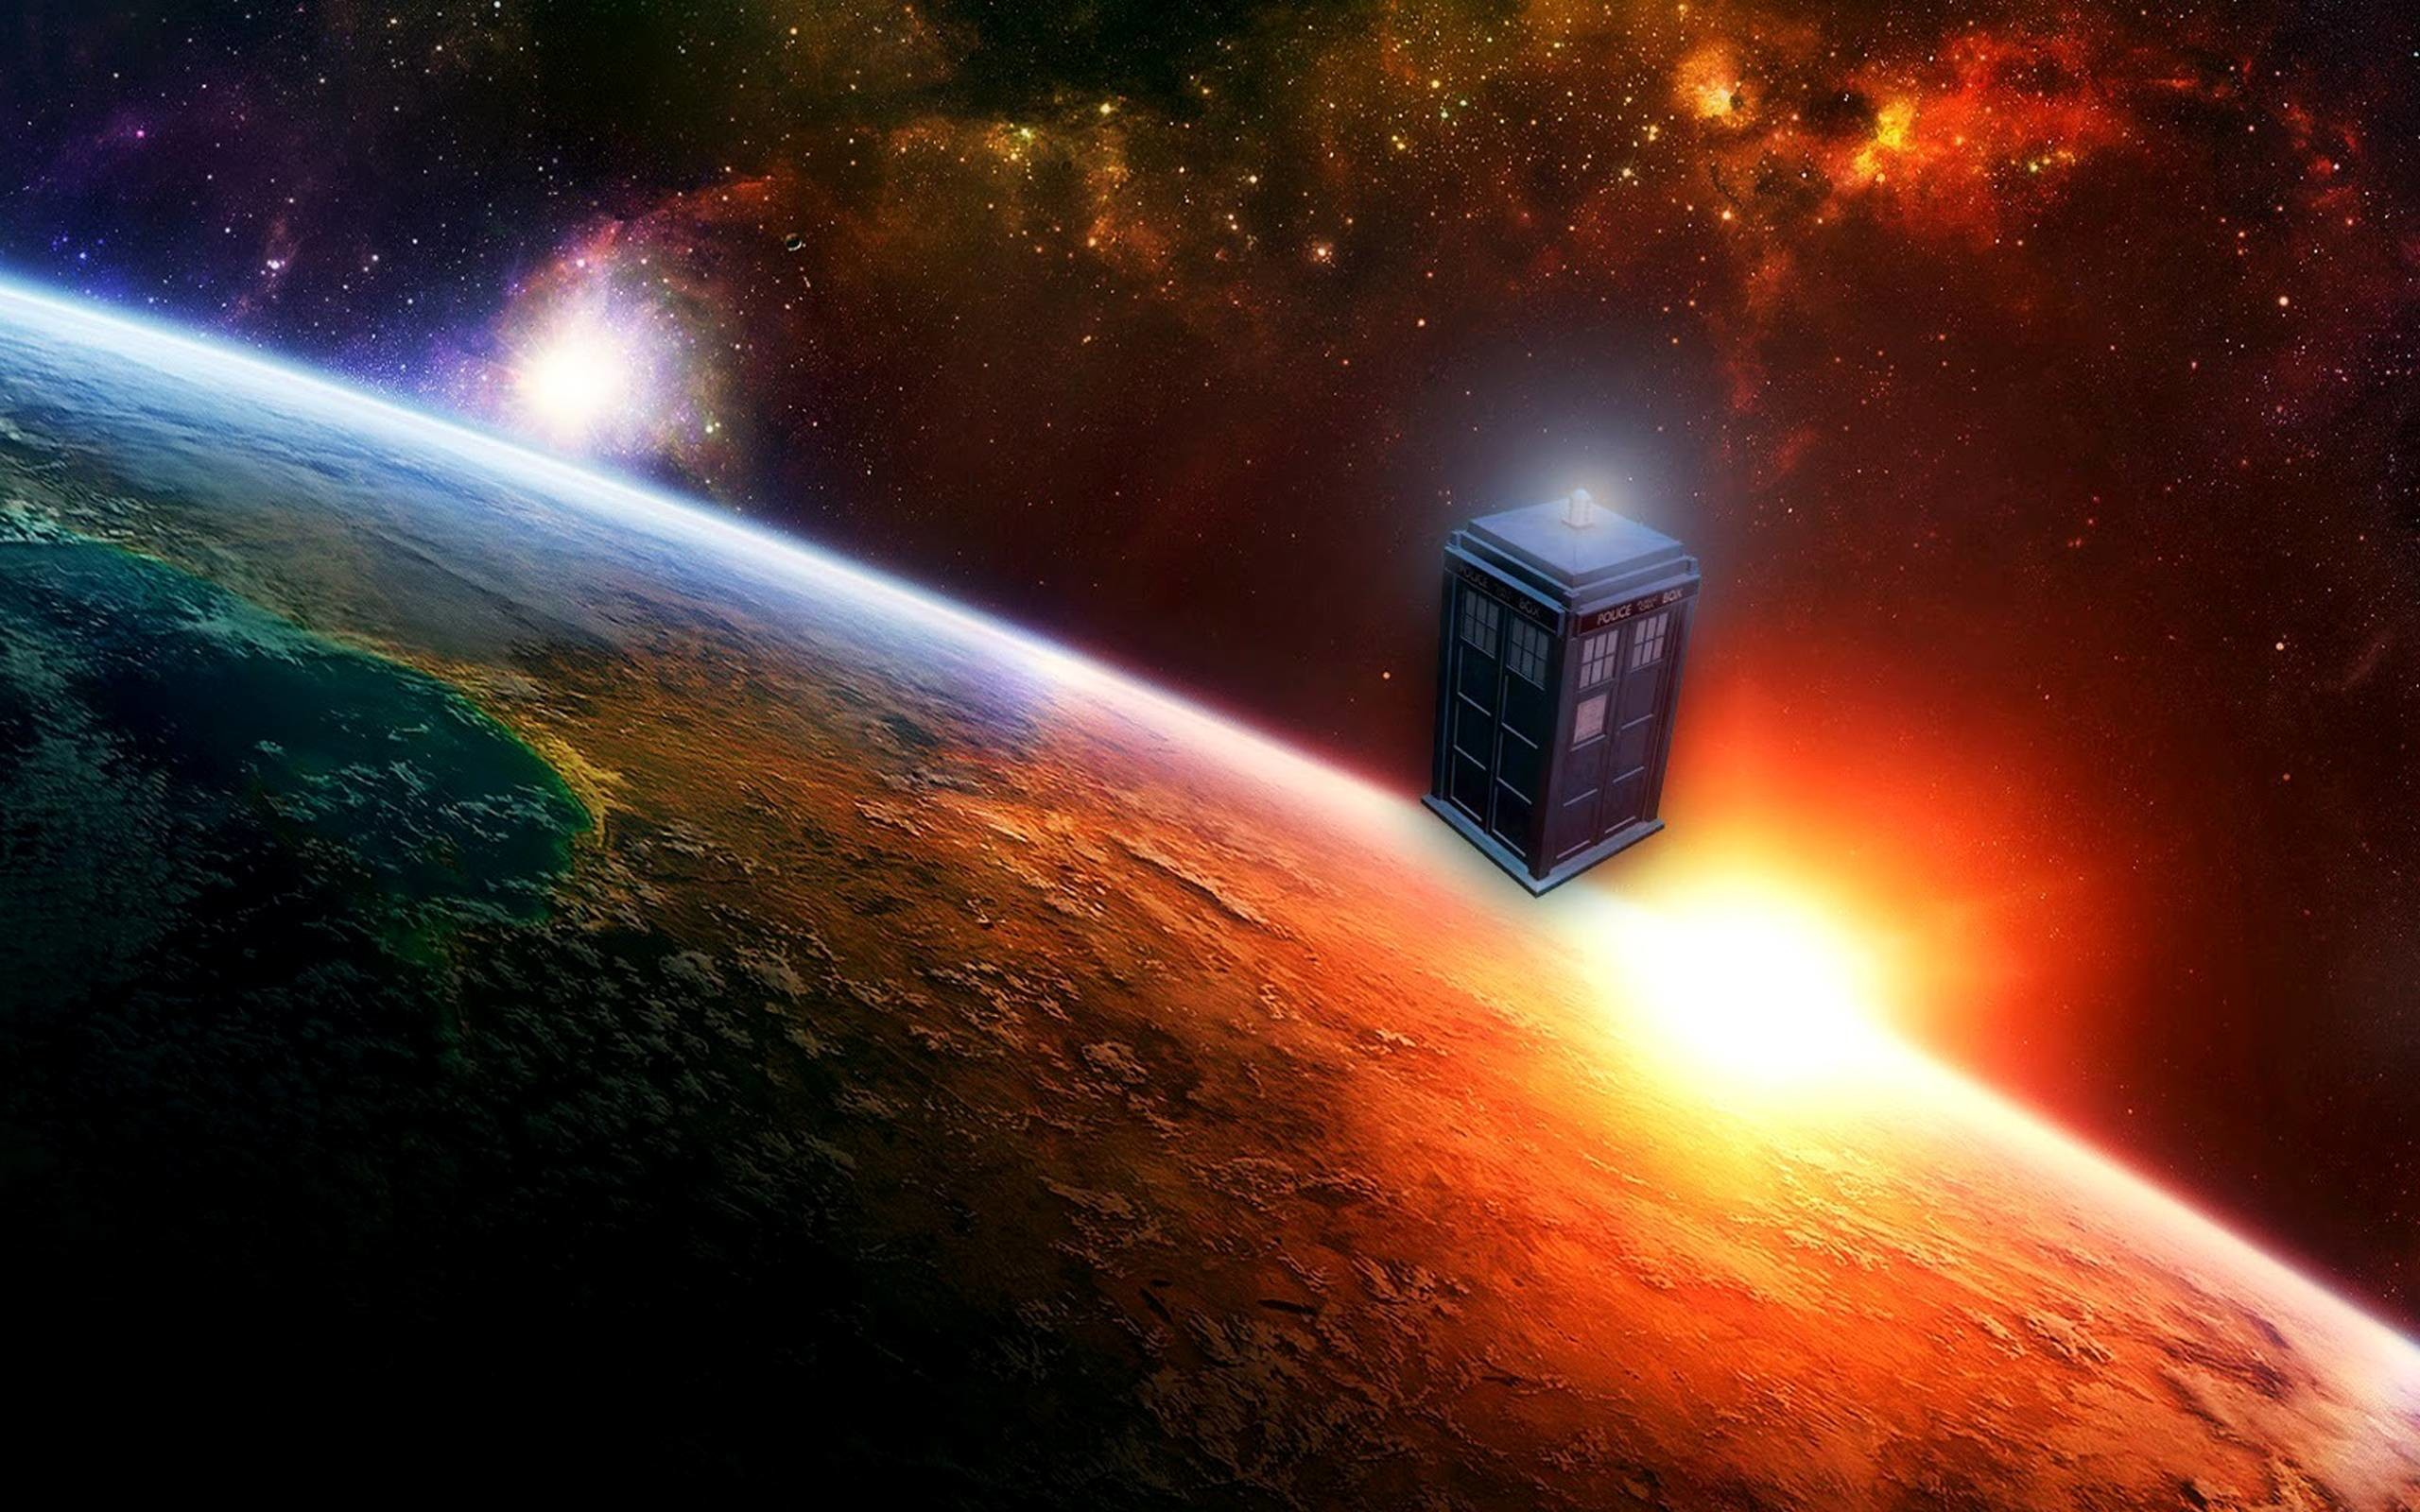 Doctor Who Free Wallpaper – HD Wallpapers